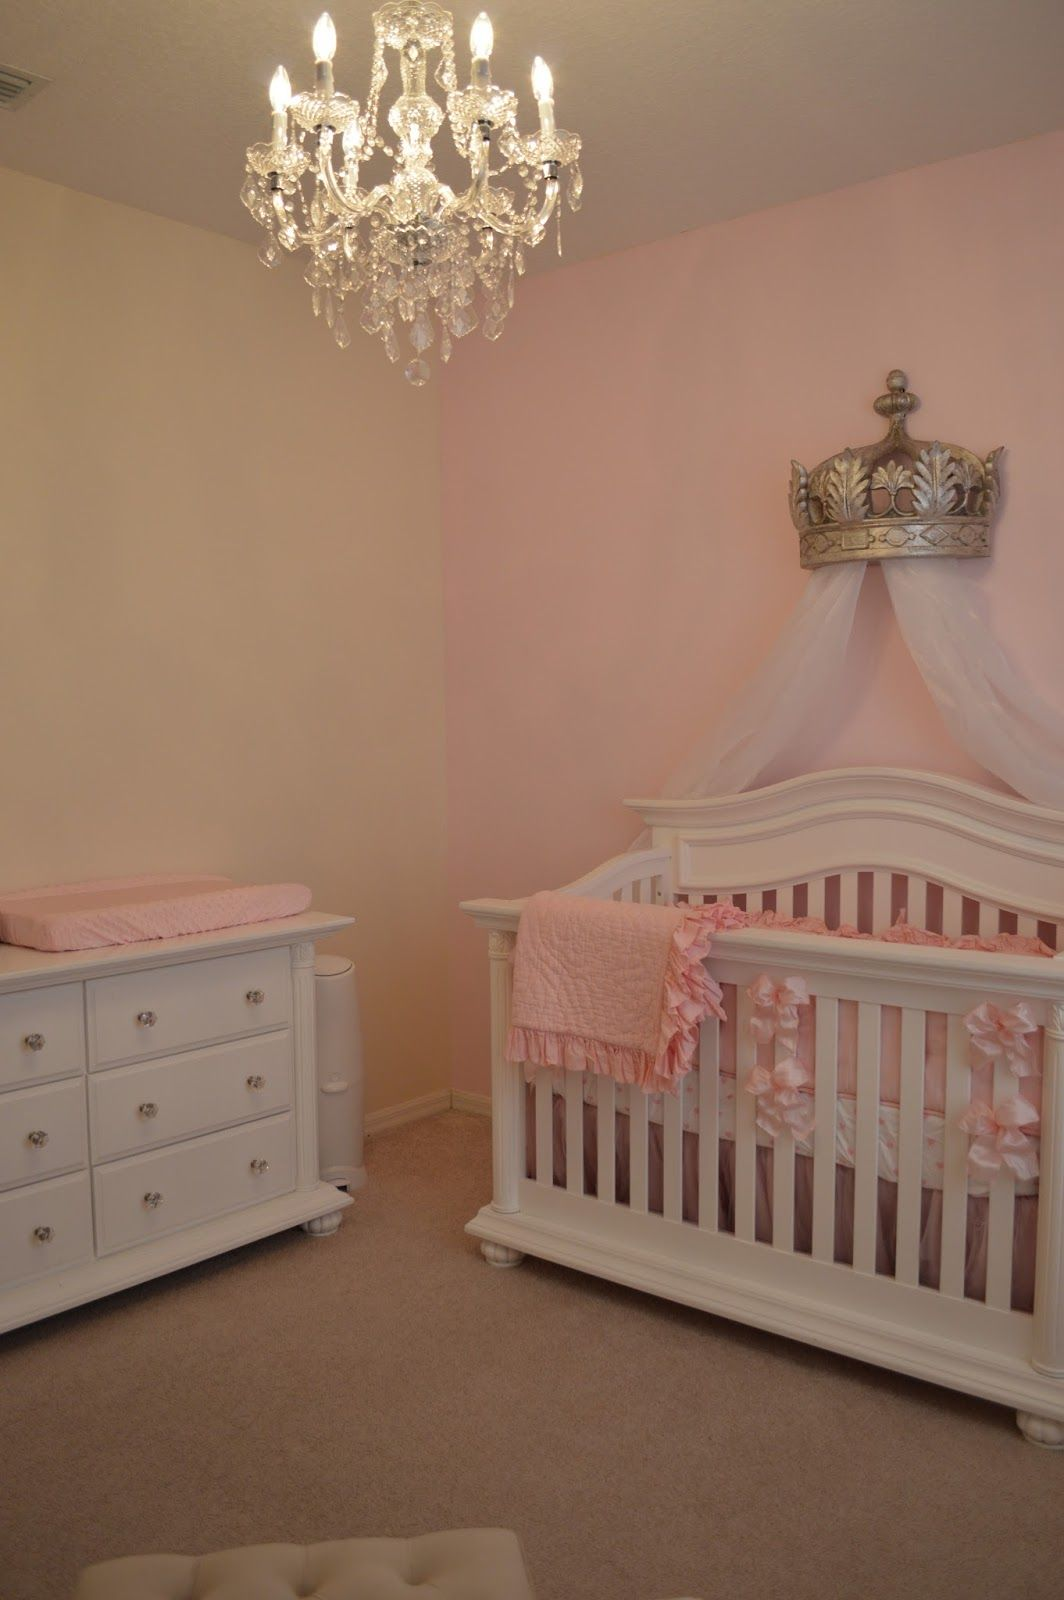 Baby cribs with canopy - The Sweet Little Southern Charm By Tara Miller Pink Nursery Baby Girl Crowns Pottery Barn Bedding